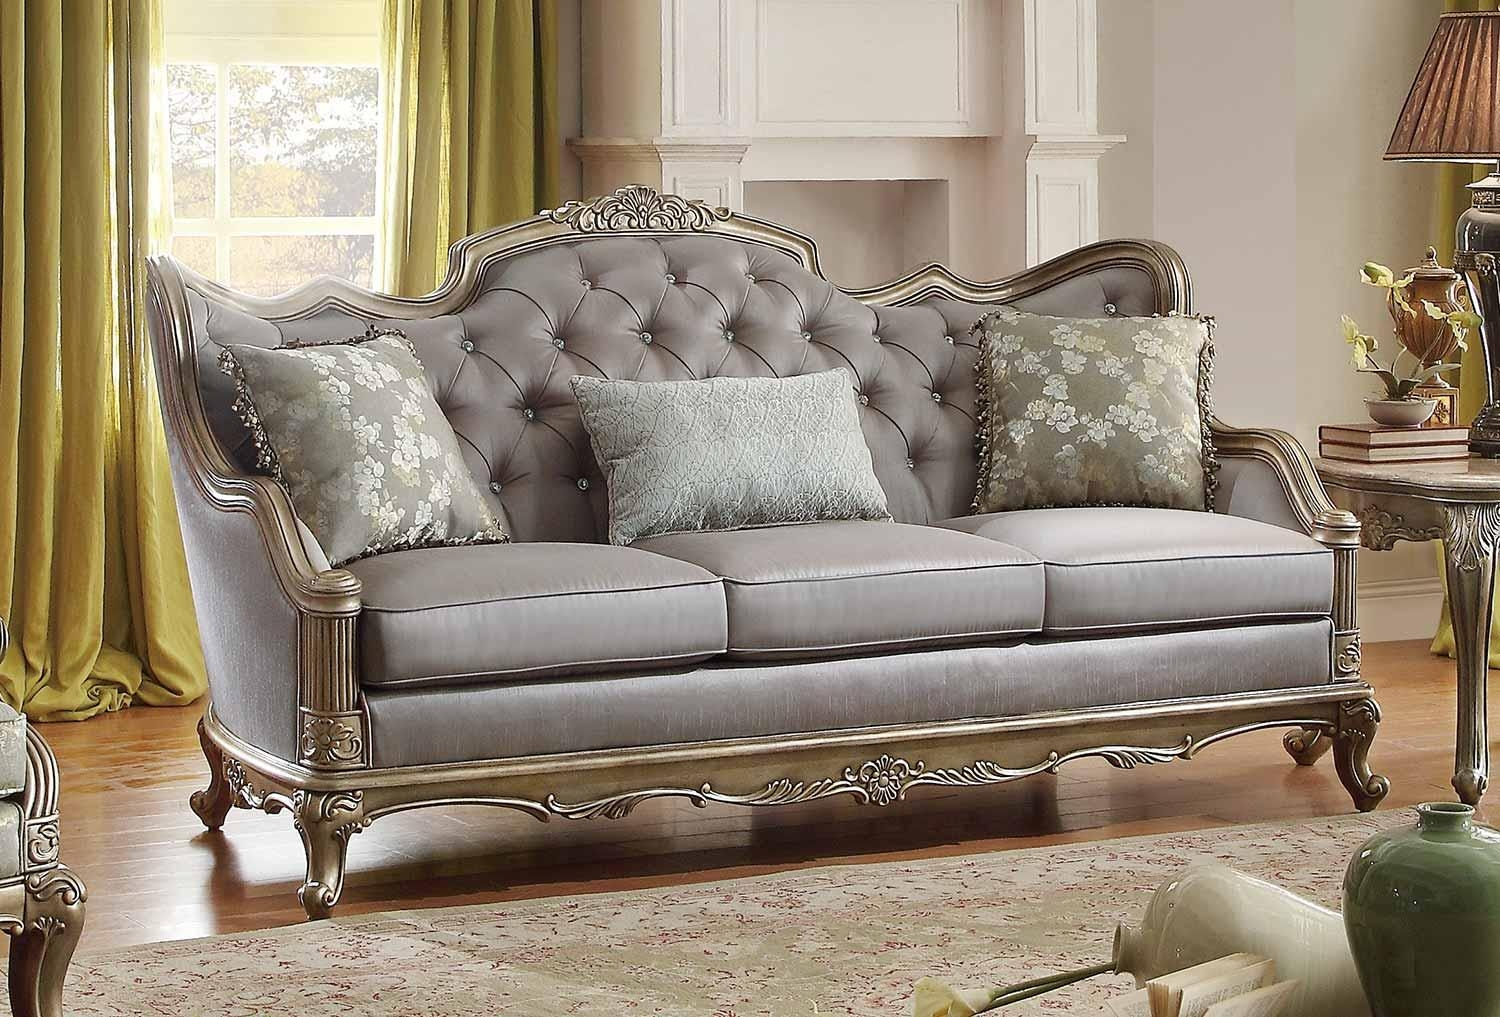 Homelegance Fiorella Sofa – Dusky Taupe 8412 3 With Homelegance Sofas (View 2 of 20)